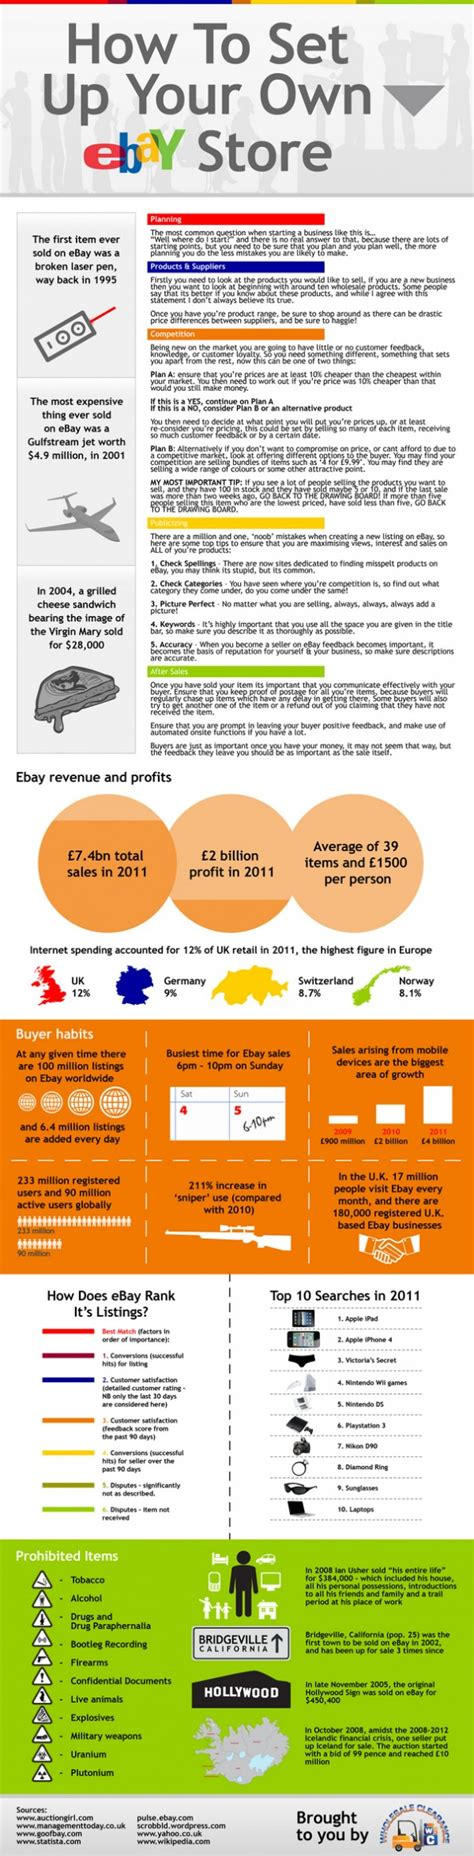 webstore your own ebay storefront how to set up your own ebay store infographic